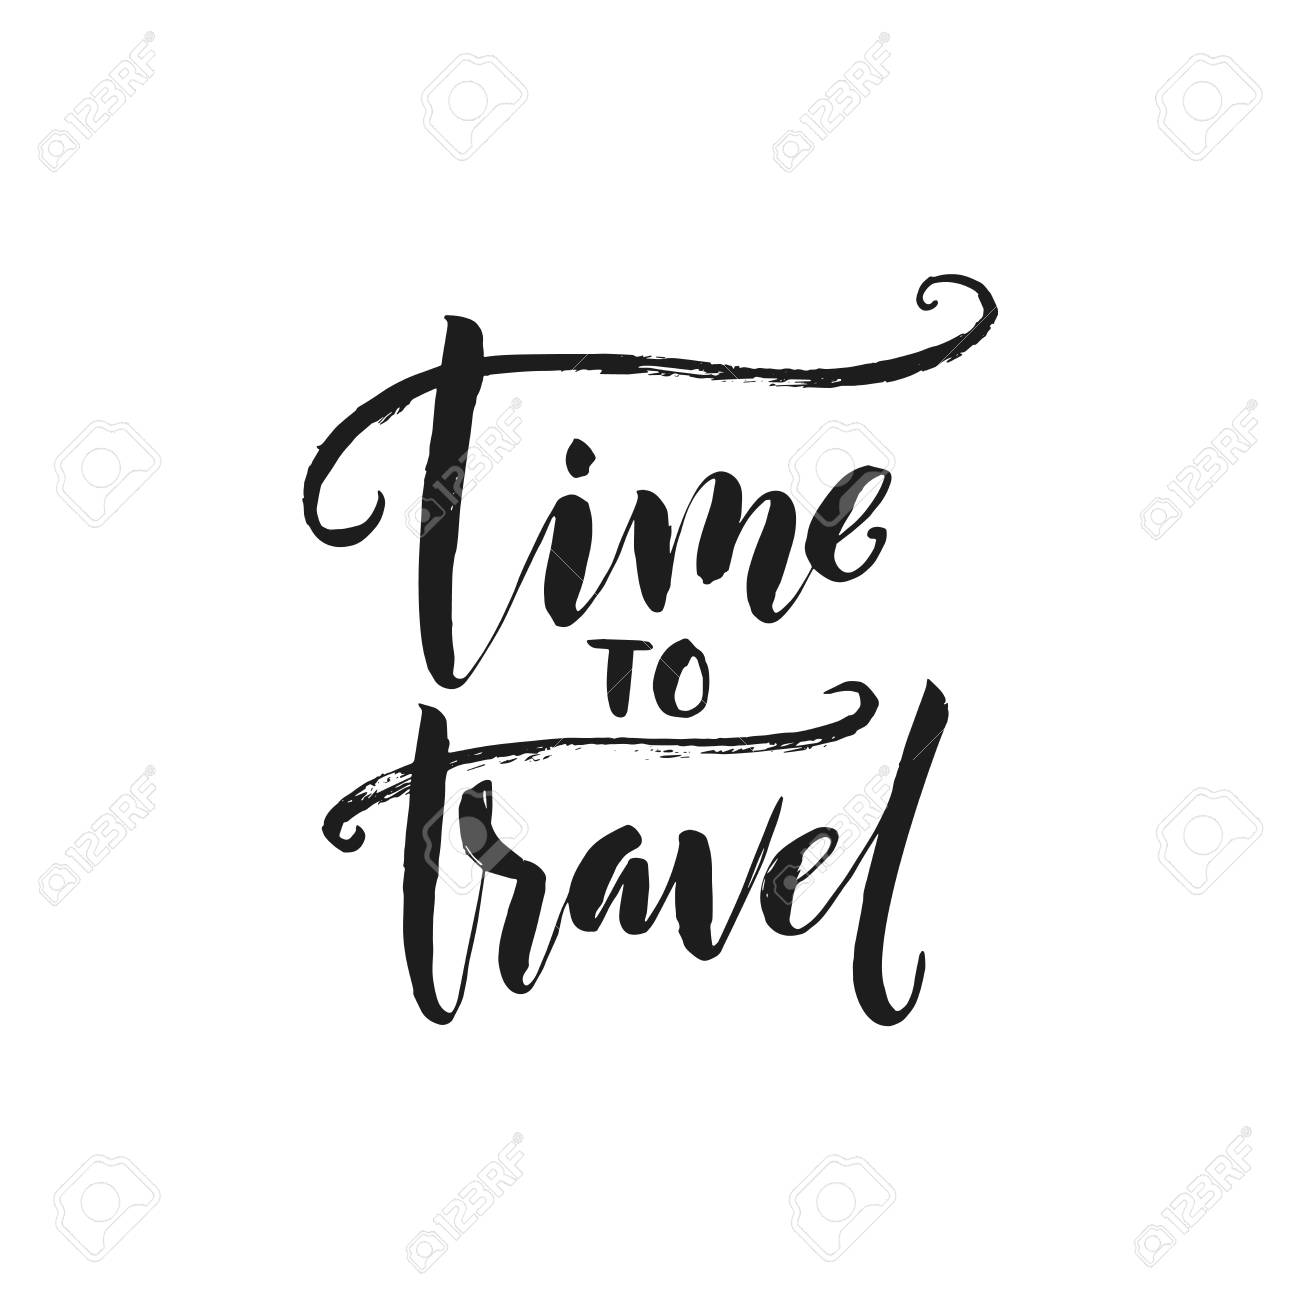 hand drawn word brush pen lettering with phrase time to travel